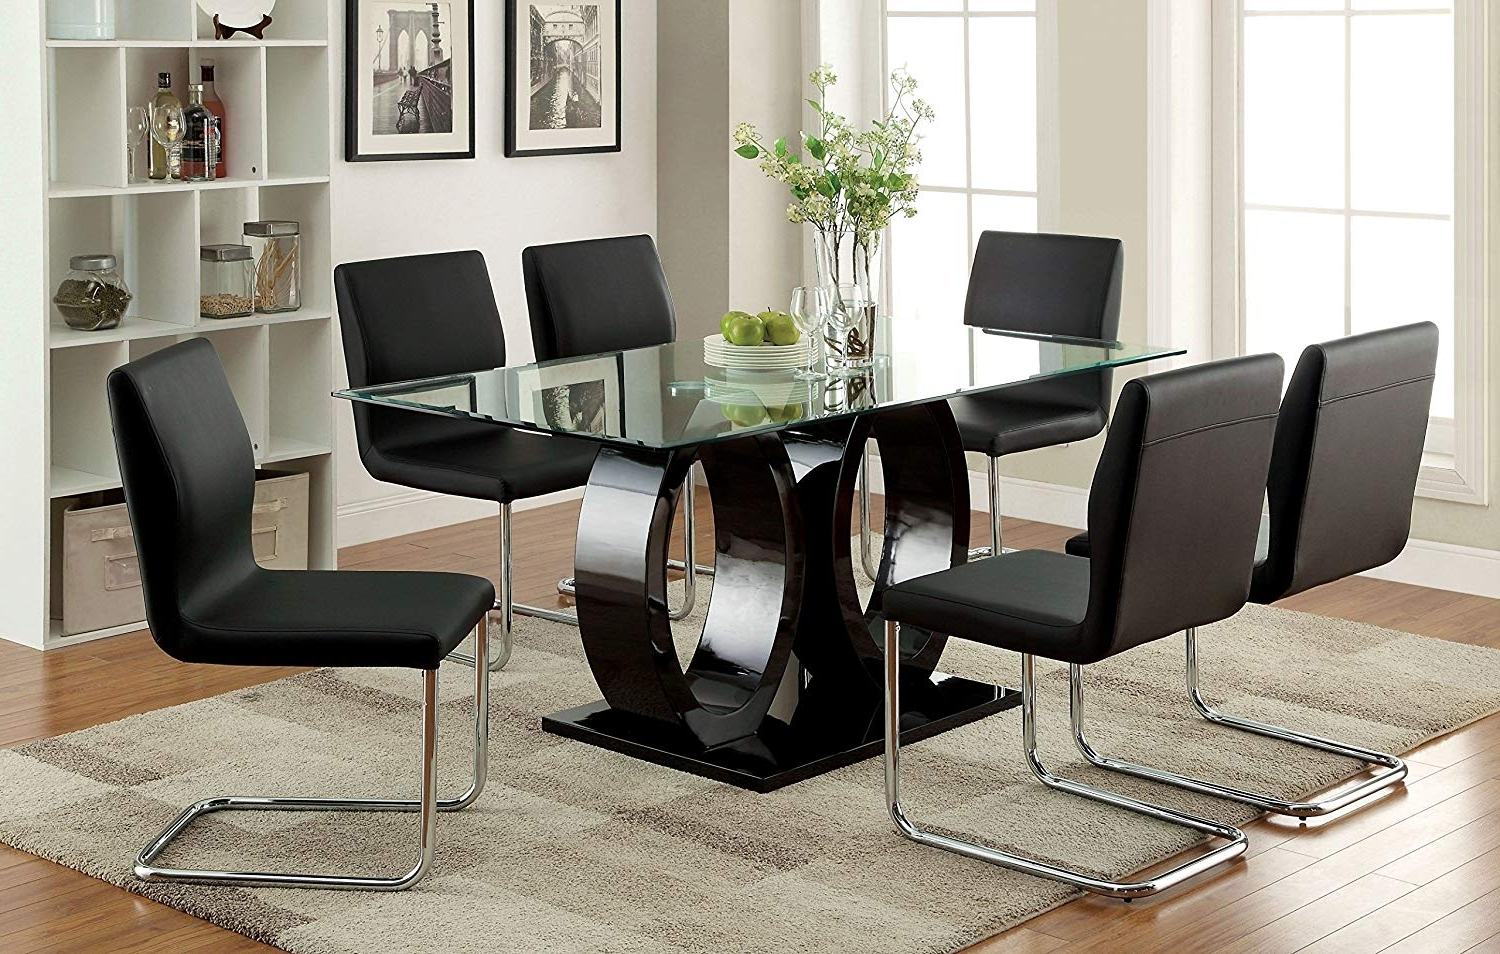 Widely Used Amazon – Furniture Of America Quezon 7 Piece Glass Top Double Intended For Contemporary Dining Room Tables And Chairs (View 25 of 25)